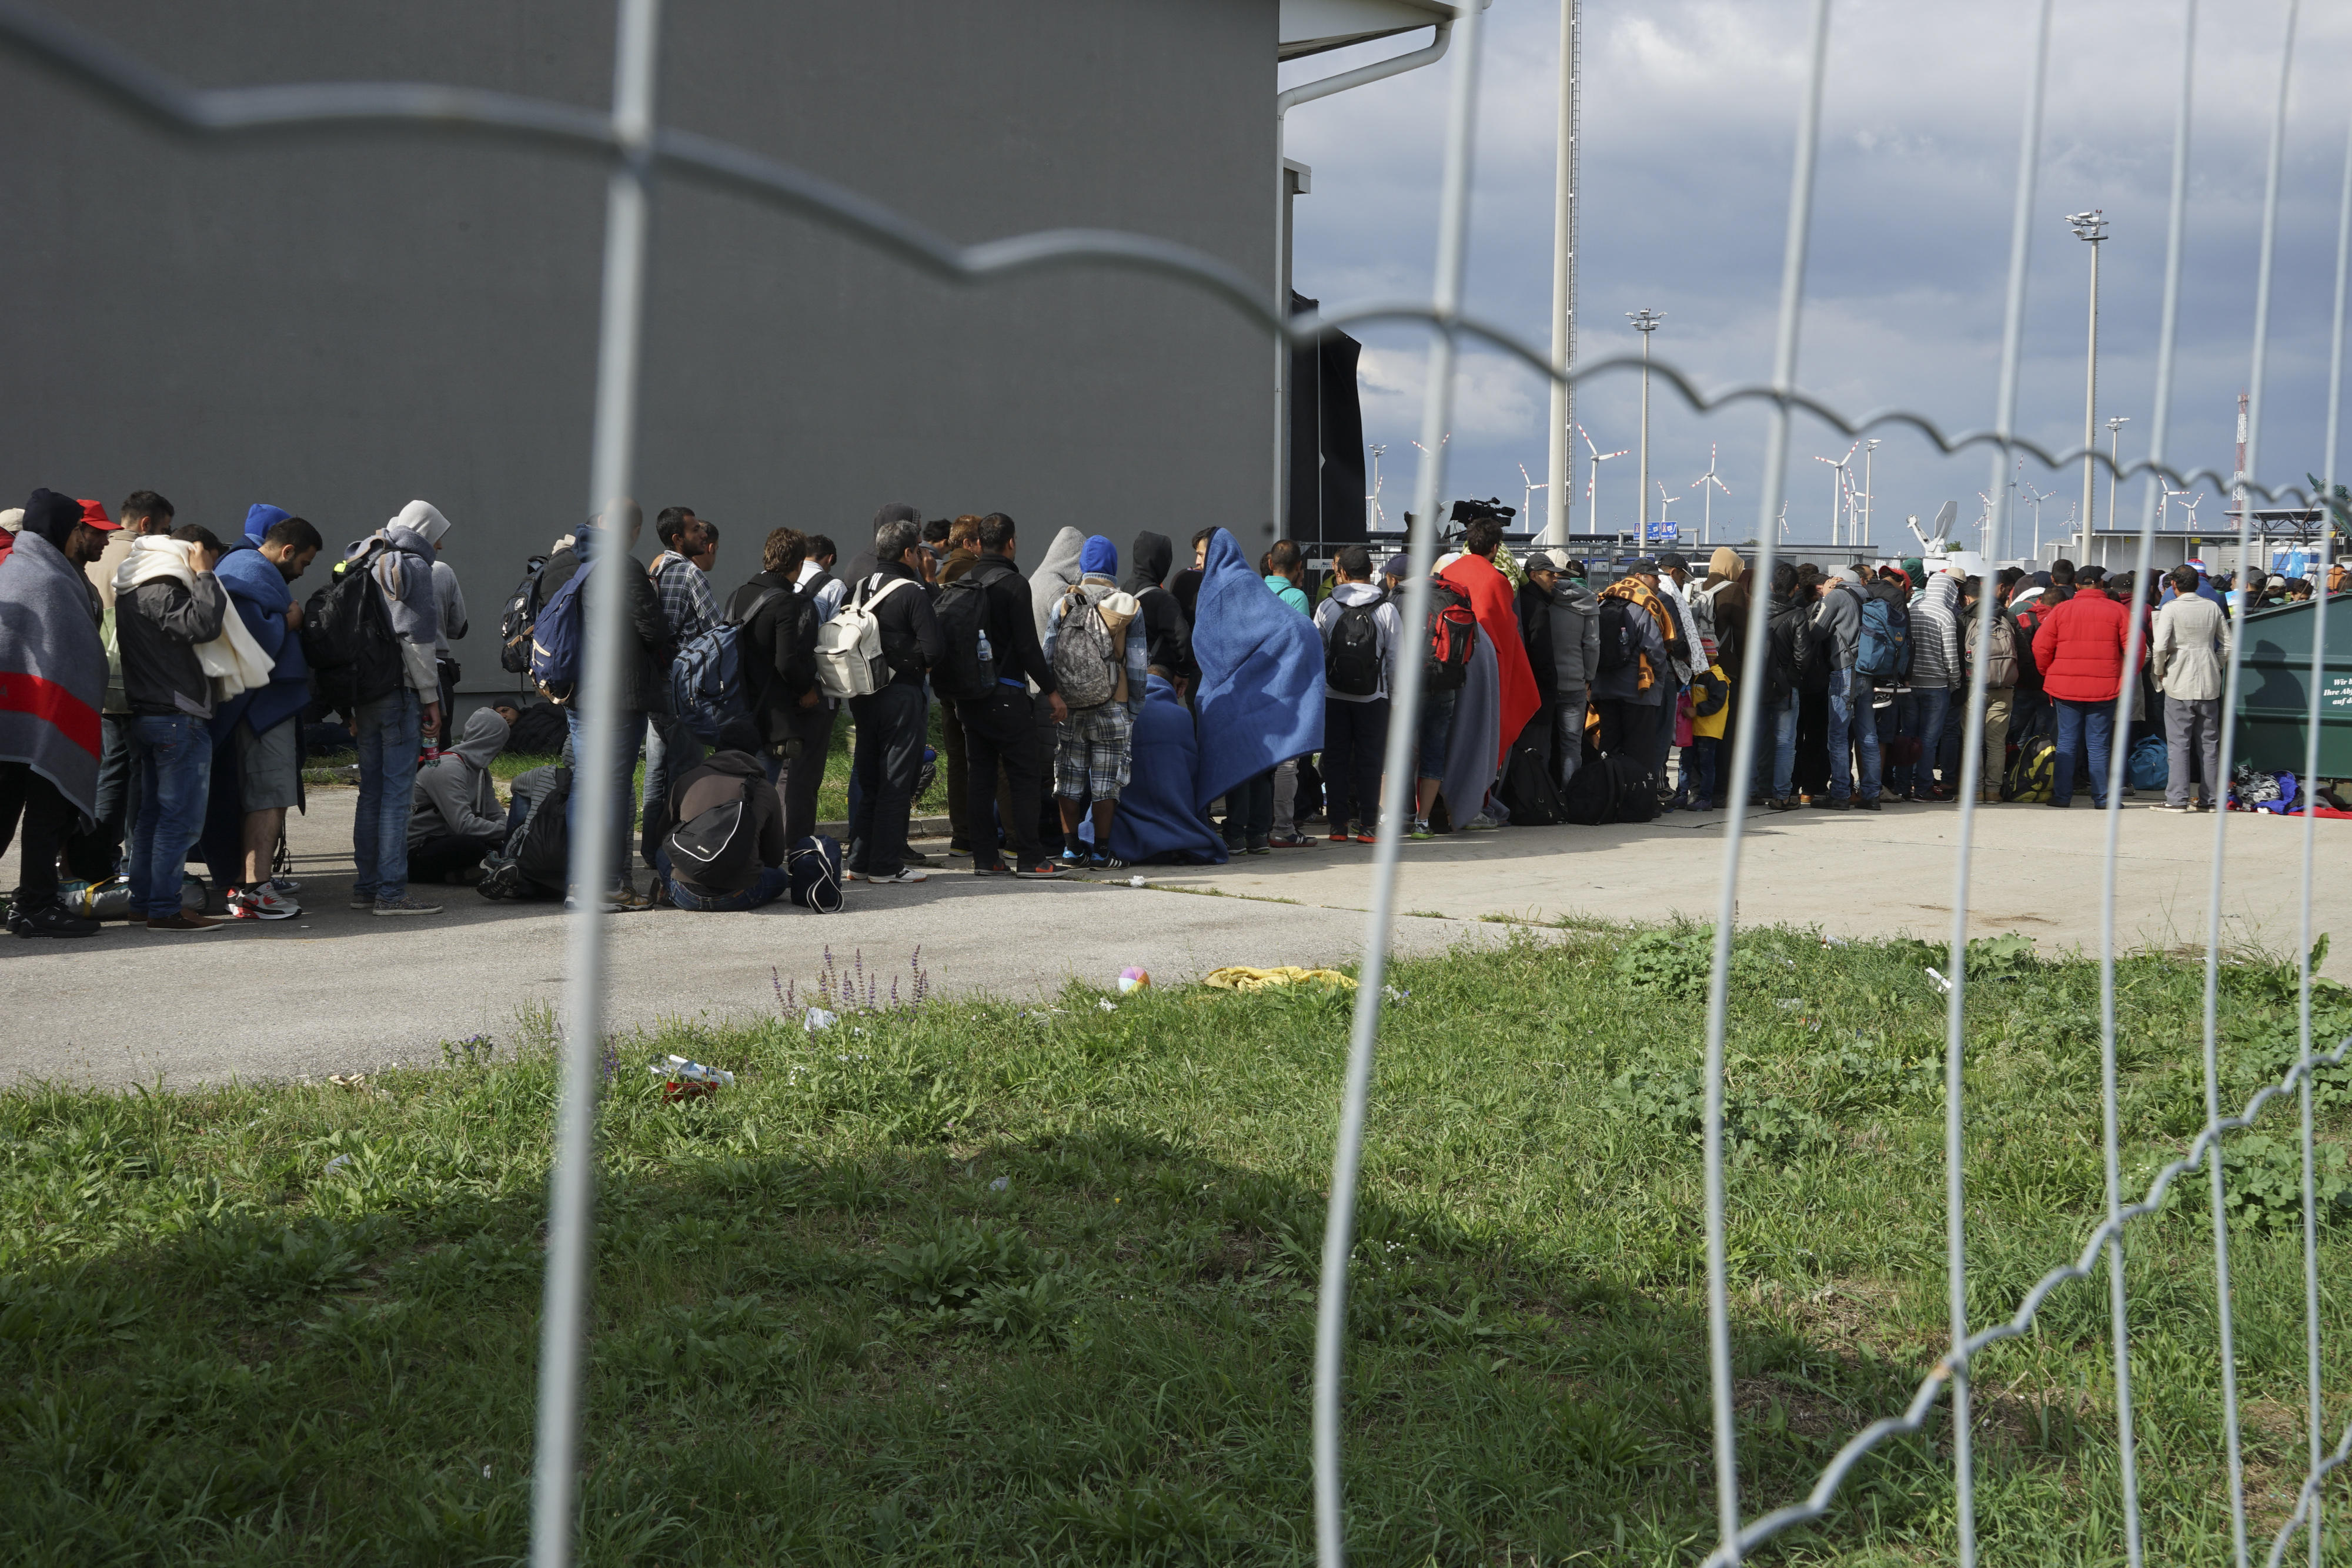 Syrian refugees at the border of Hungary and Austria on their way to Germany. Hungary